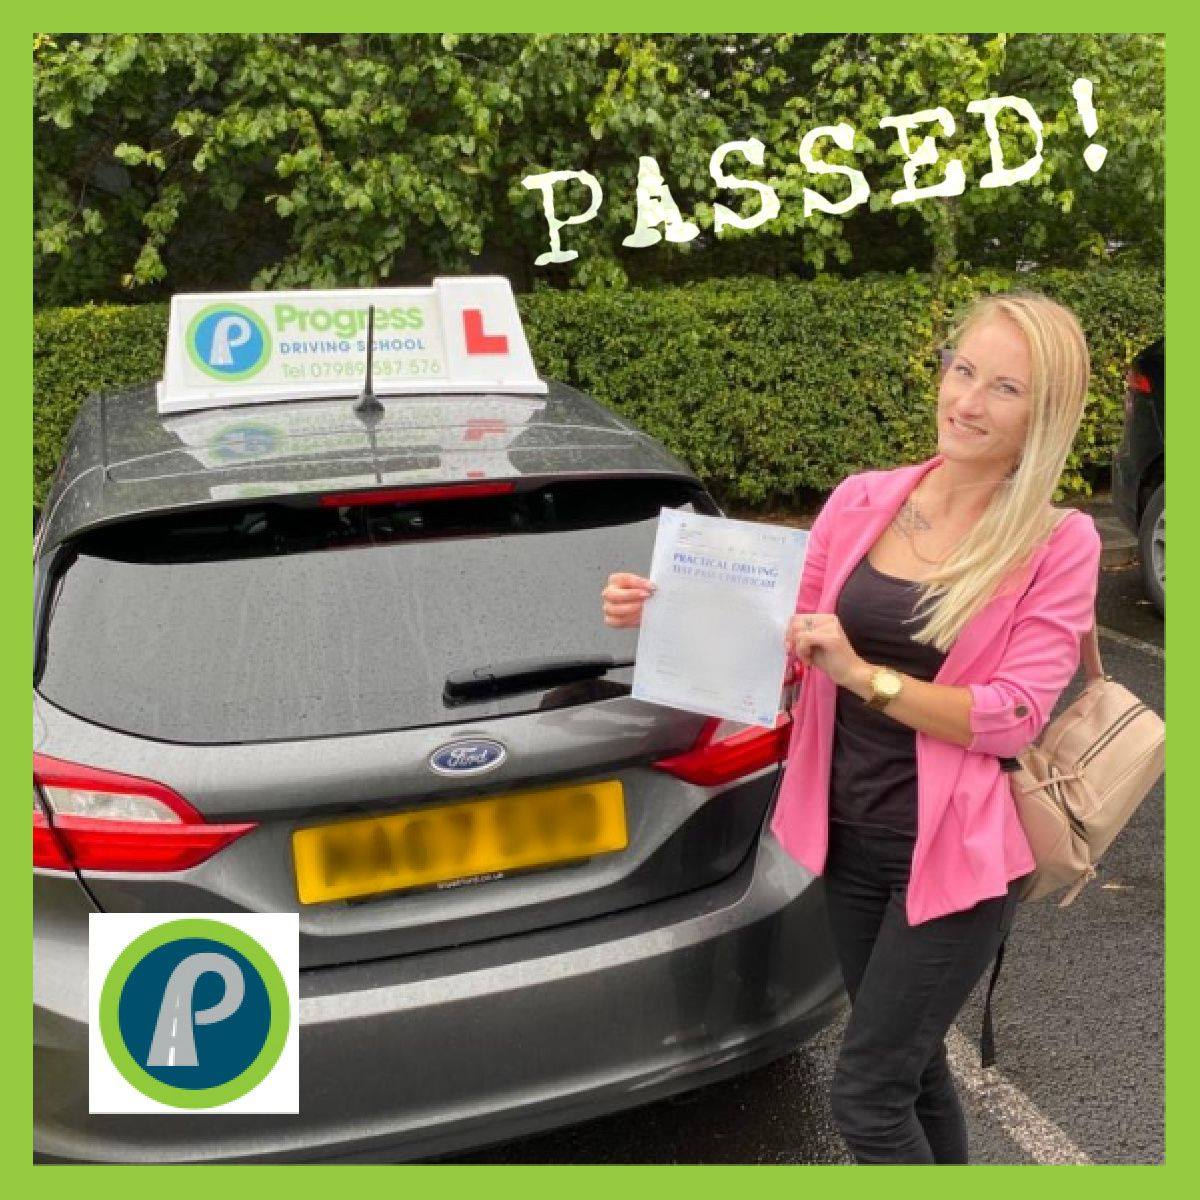 Aurelija from Golborne passed her driving test with Progress Driving School - despite her learning being interrupted by the national lockdown in 2020.